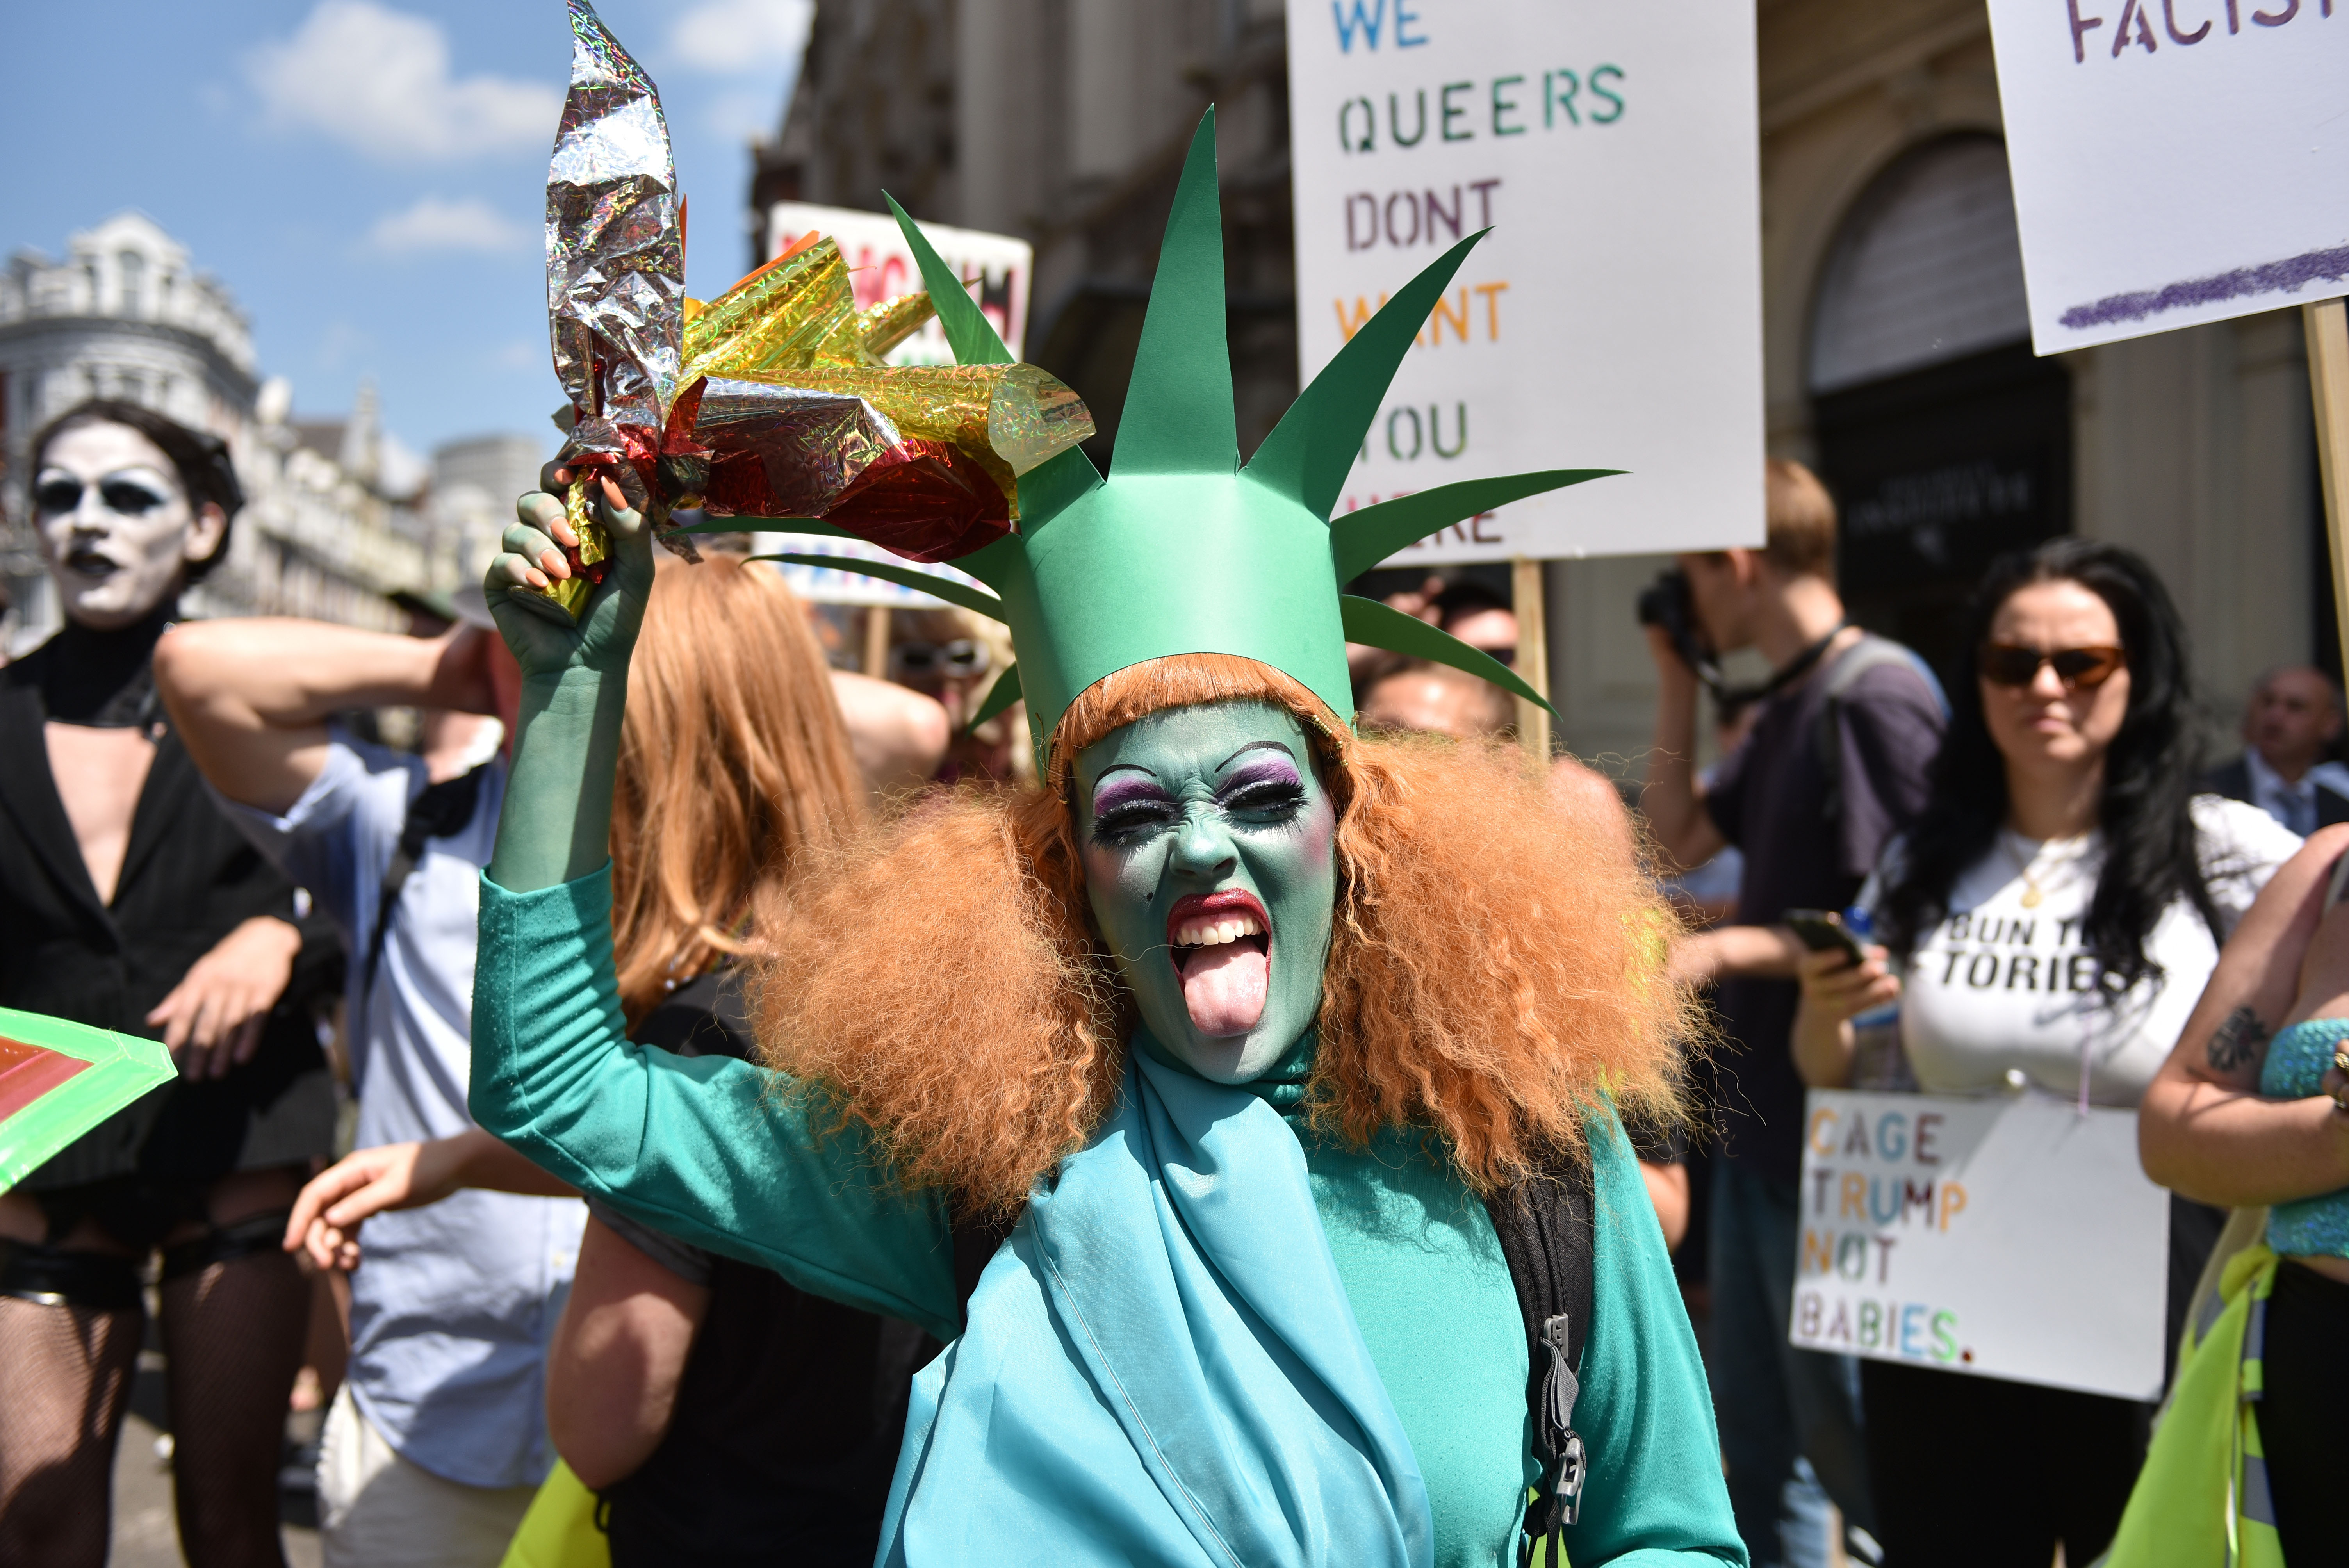 LONDON, UNITED KINGDOM - JULY 13:  A demonstrator dressed as the statue of Liberty attends the Drag Protest Parade LGBTQi March against Trump on July 13, 2018 in London, United Kingdom. Drag queens hold a mass rally in Central London against the Trump administration?s record on LGBT rights including a ban on transgender personnel. The President of the United States and First Lady, Melania Trump, touched down yesterday in the UK on Air Force One for their first official visit. Today the President will visit Prime Minister Theresa May at Chequers and take tea with the Queen at Windsor Castle.  (Photo by John Keeble/Getty Images)